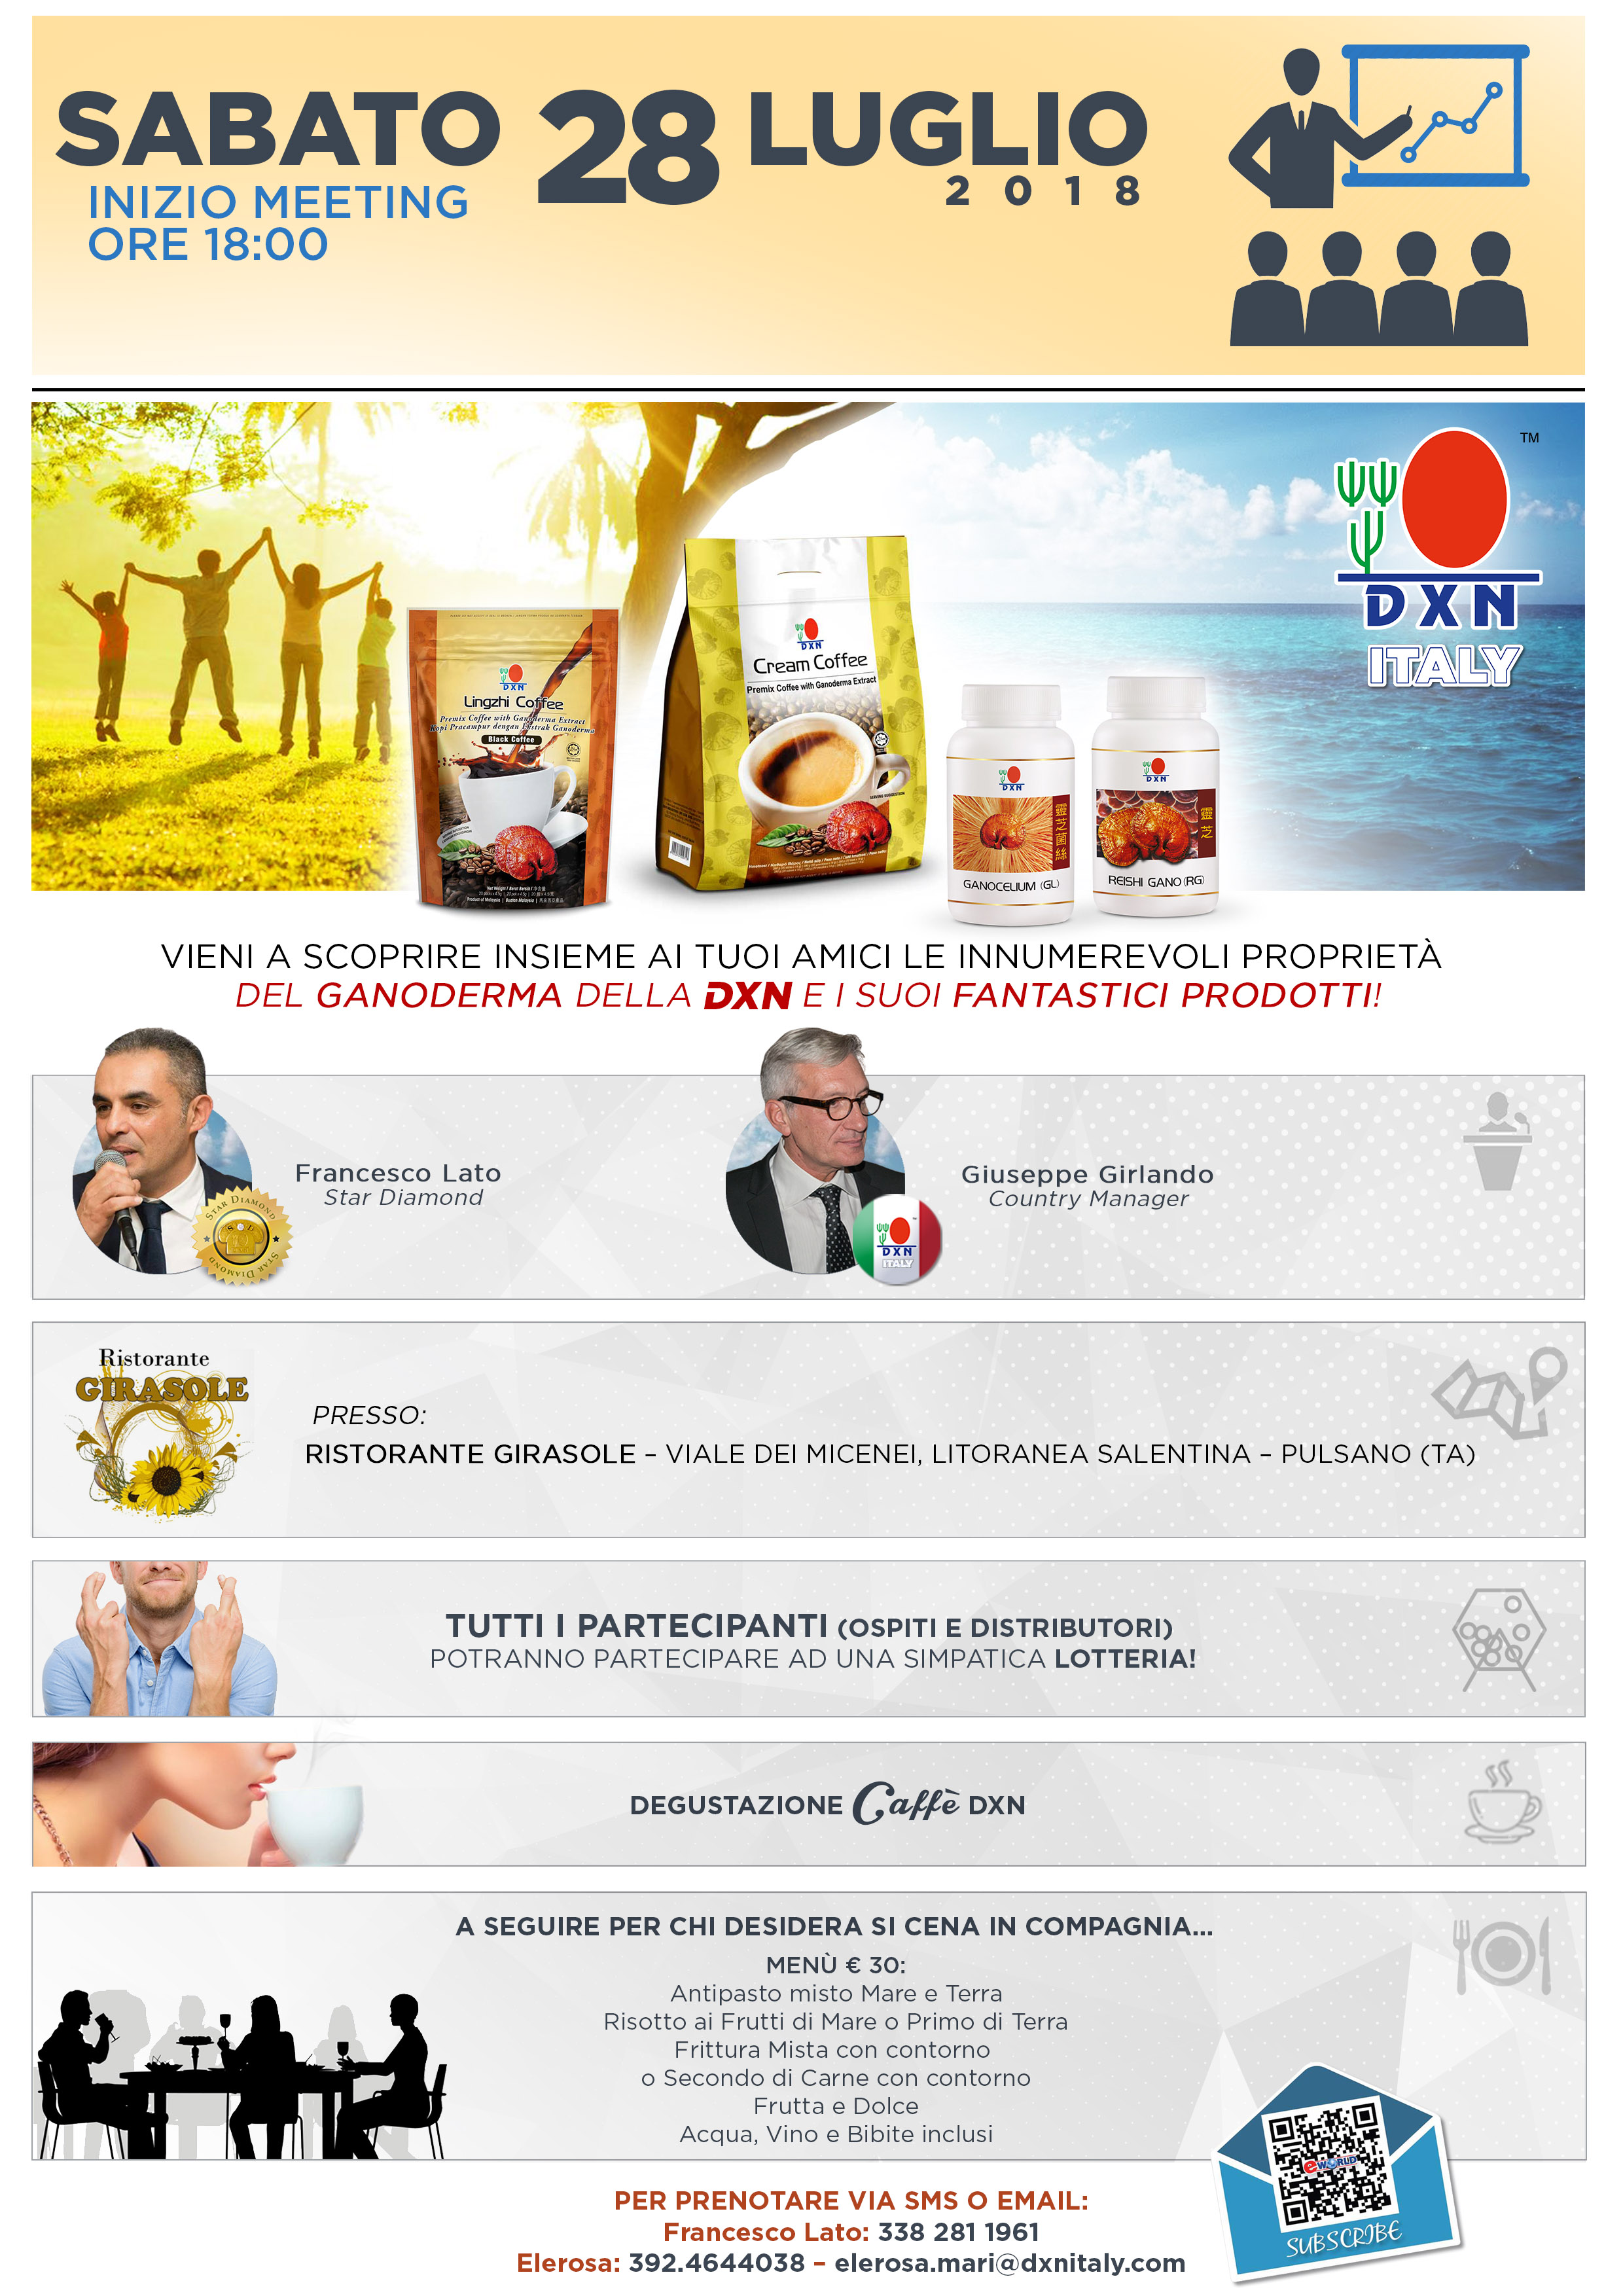 DXN Italia - DXN Italy